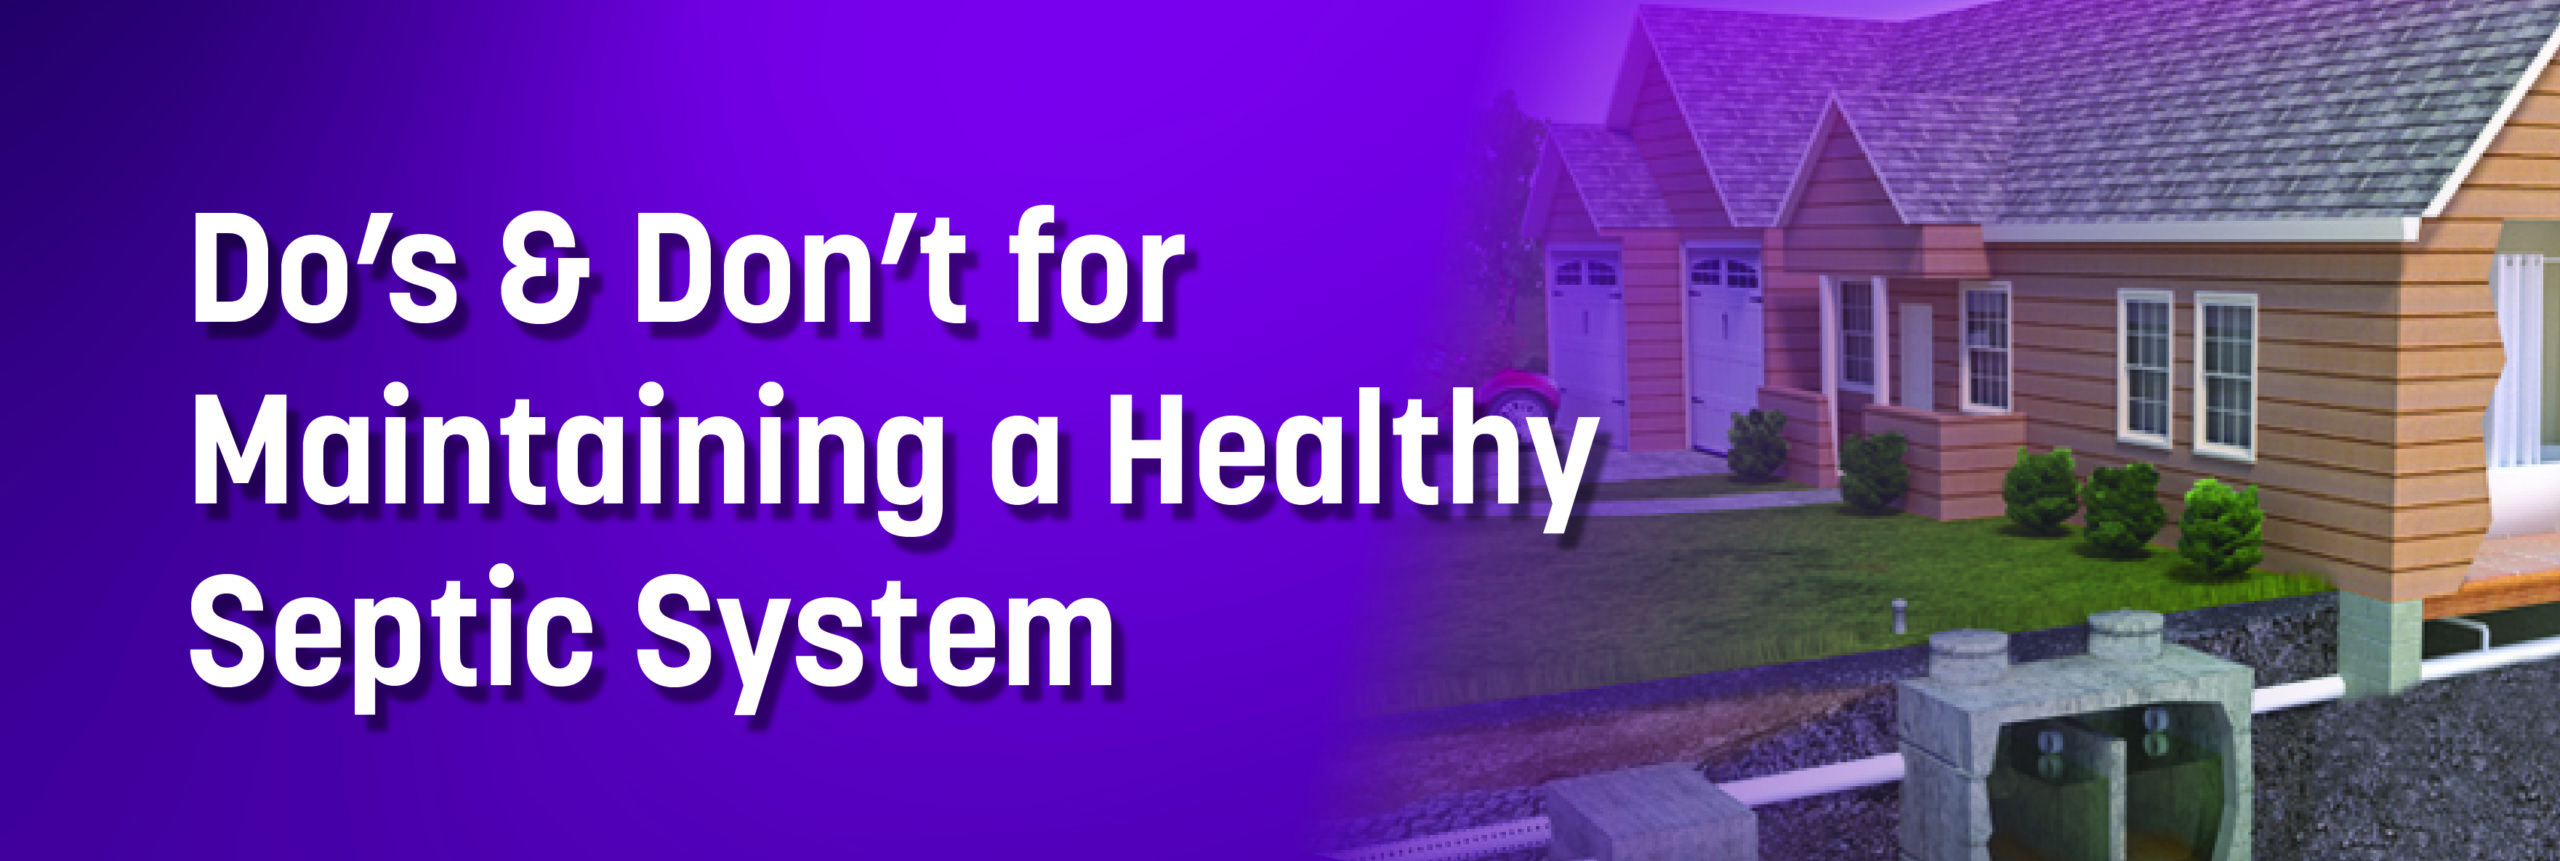 Dos & Don't for Maintaining a Healthy Septic System